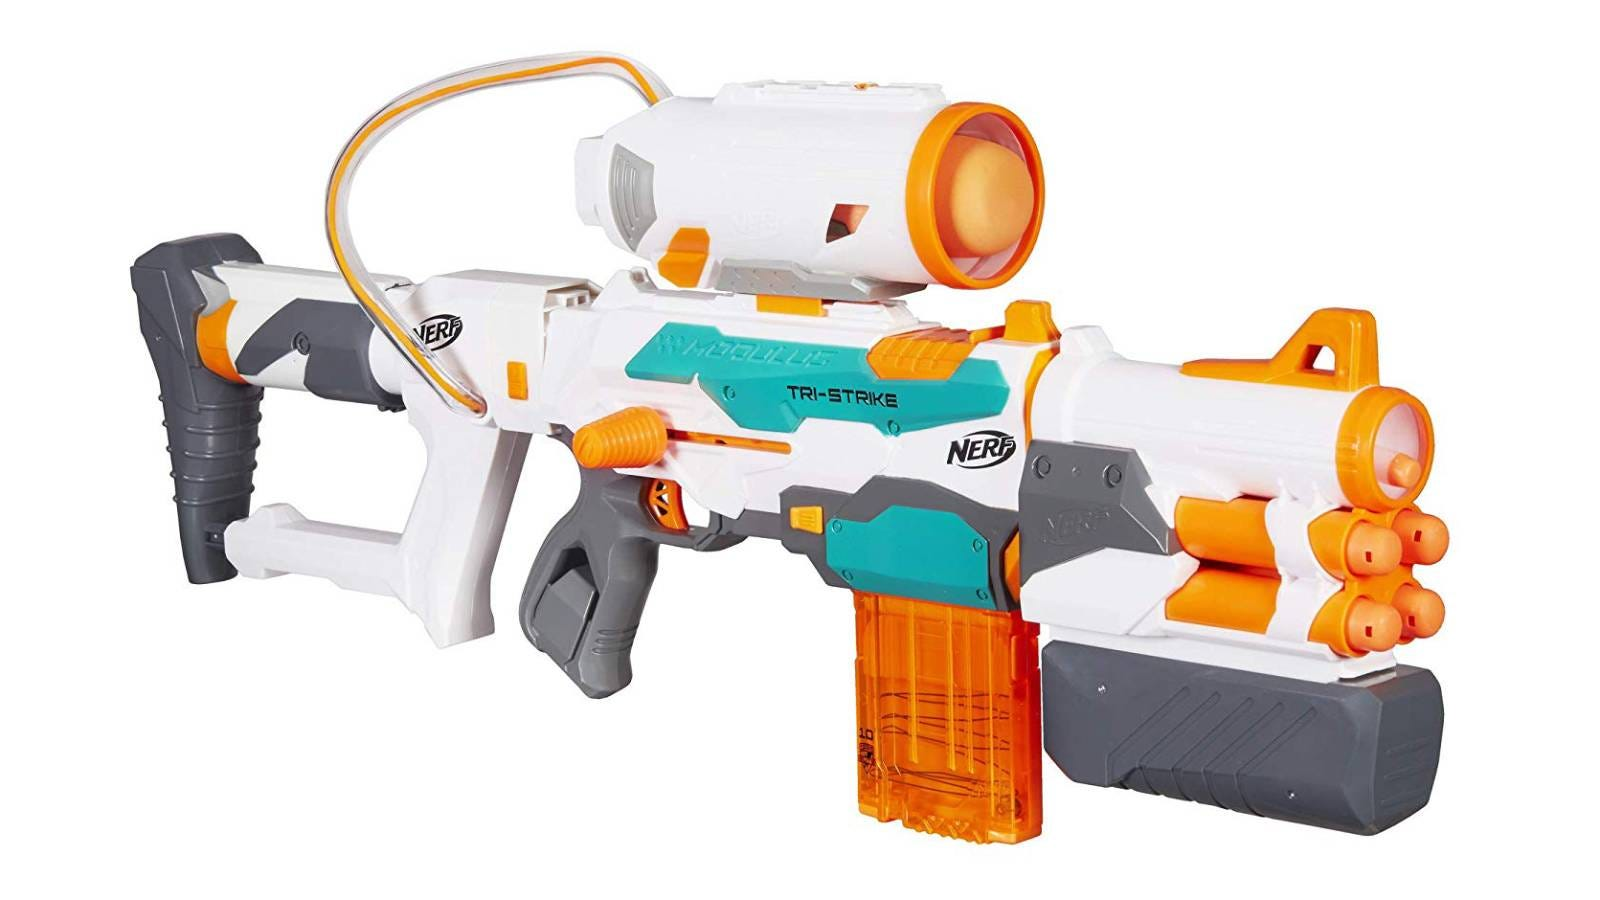 The Nerf Modulus Tri-Strike